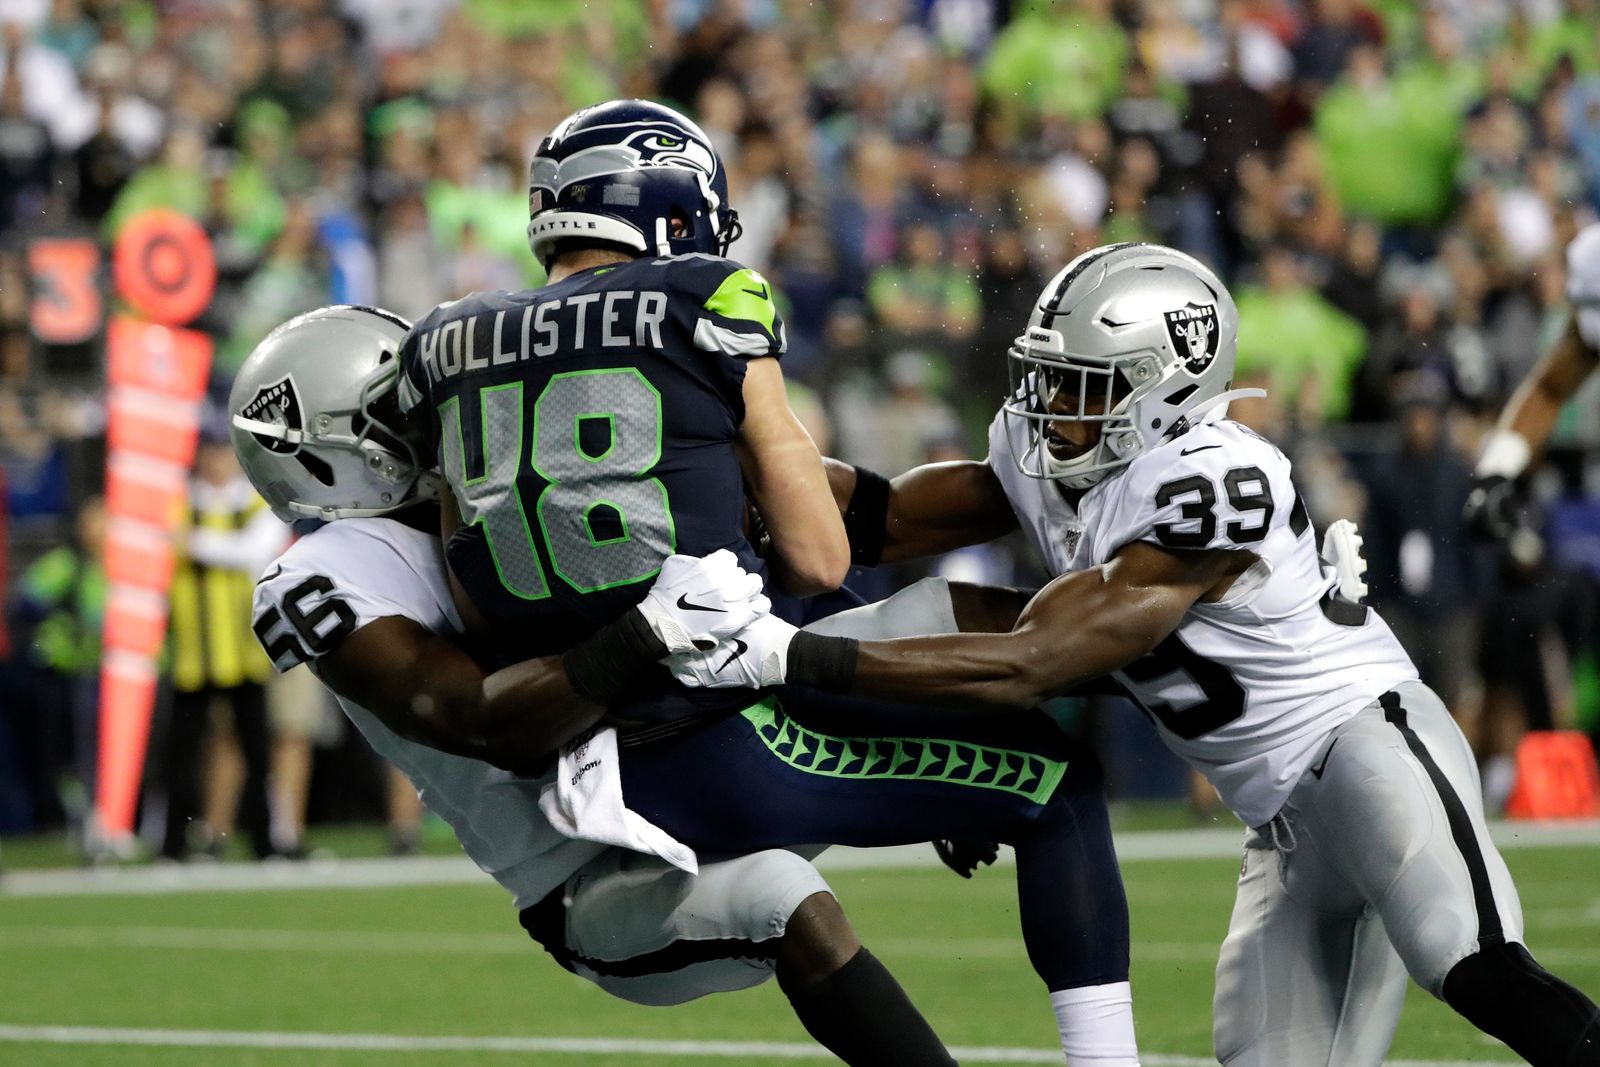 Seattle Seahawks tight end Jacob Hollister (48) scores a touchdown after a reception as he is tackled by Oakland Raiders' Te'Von Coney, left, and Jordan Richards, right, during the first half of an NFL football preseason game Thursday, Aug. 29, 2019, in Seattle. (AP Photo/Elaine Thompson)